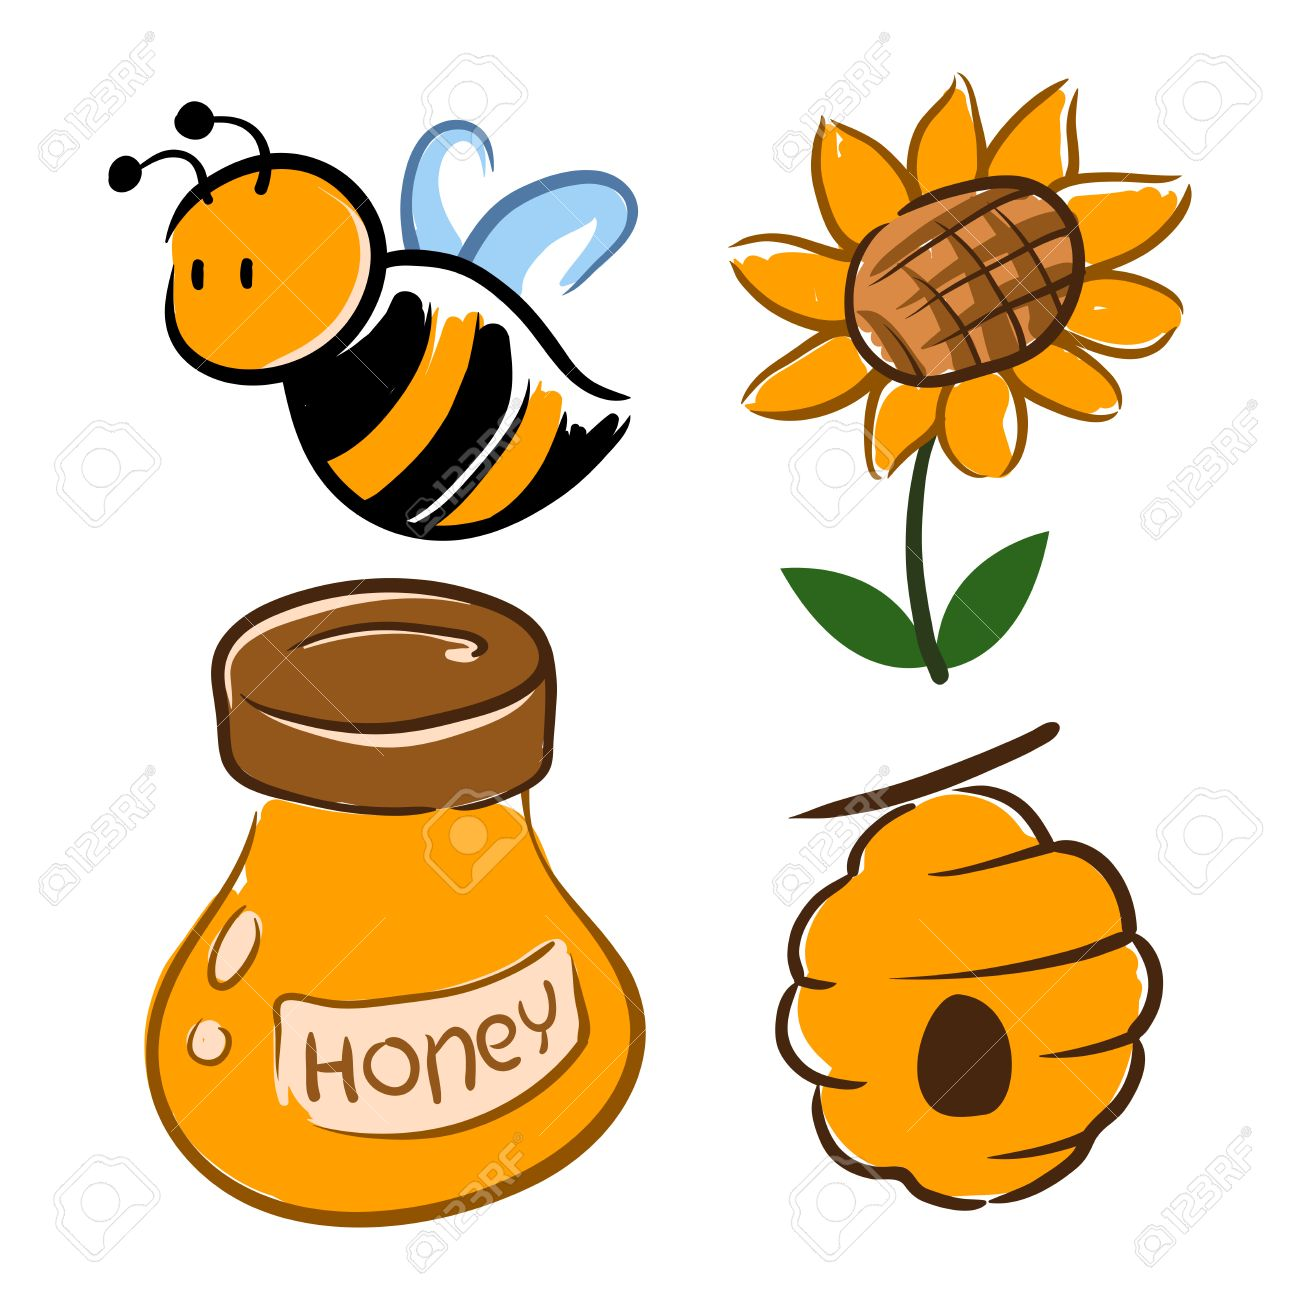 Hand Drawing Of Bumblebee With Flower And Honey Jar Vector Illustration Stock